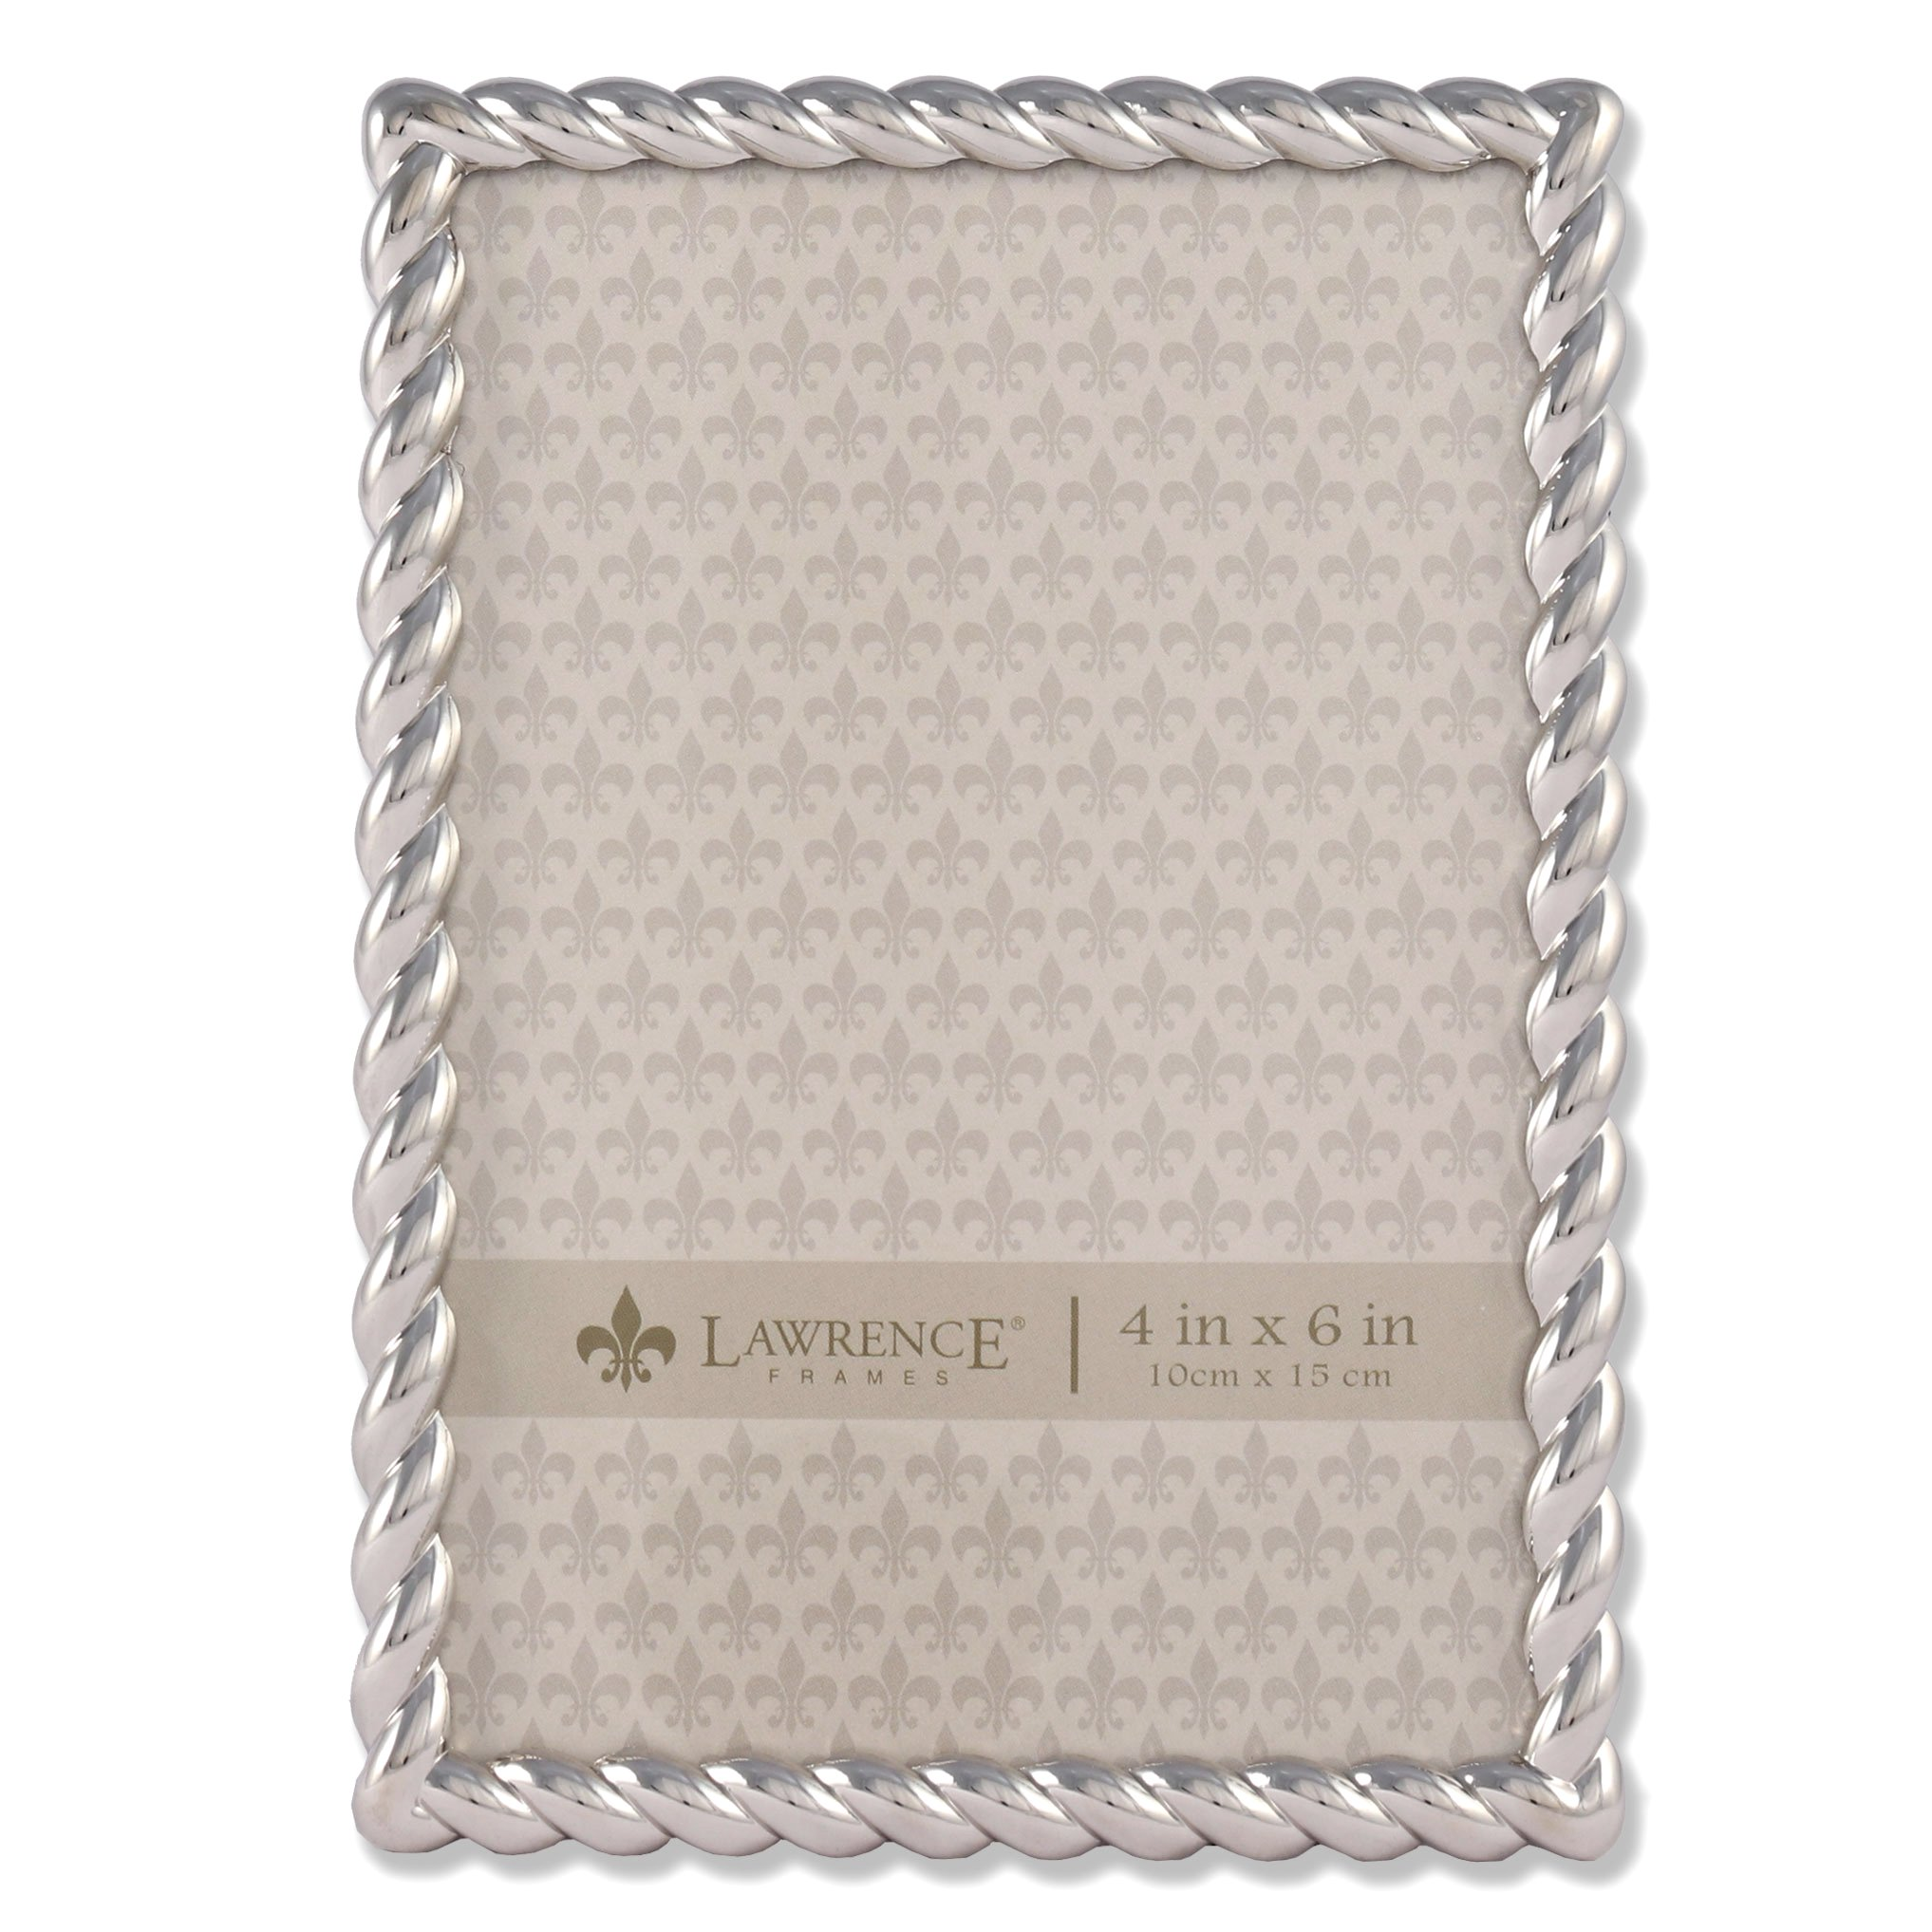 Lawrence Frames 710046 Silver Metal Rope Picture Frame, 4 by 6-Inch by Lawrence Frames